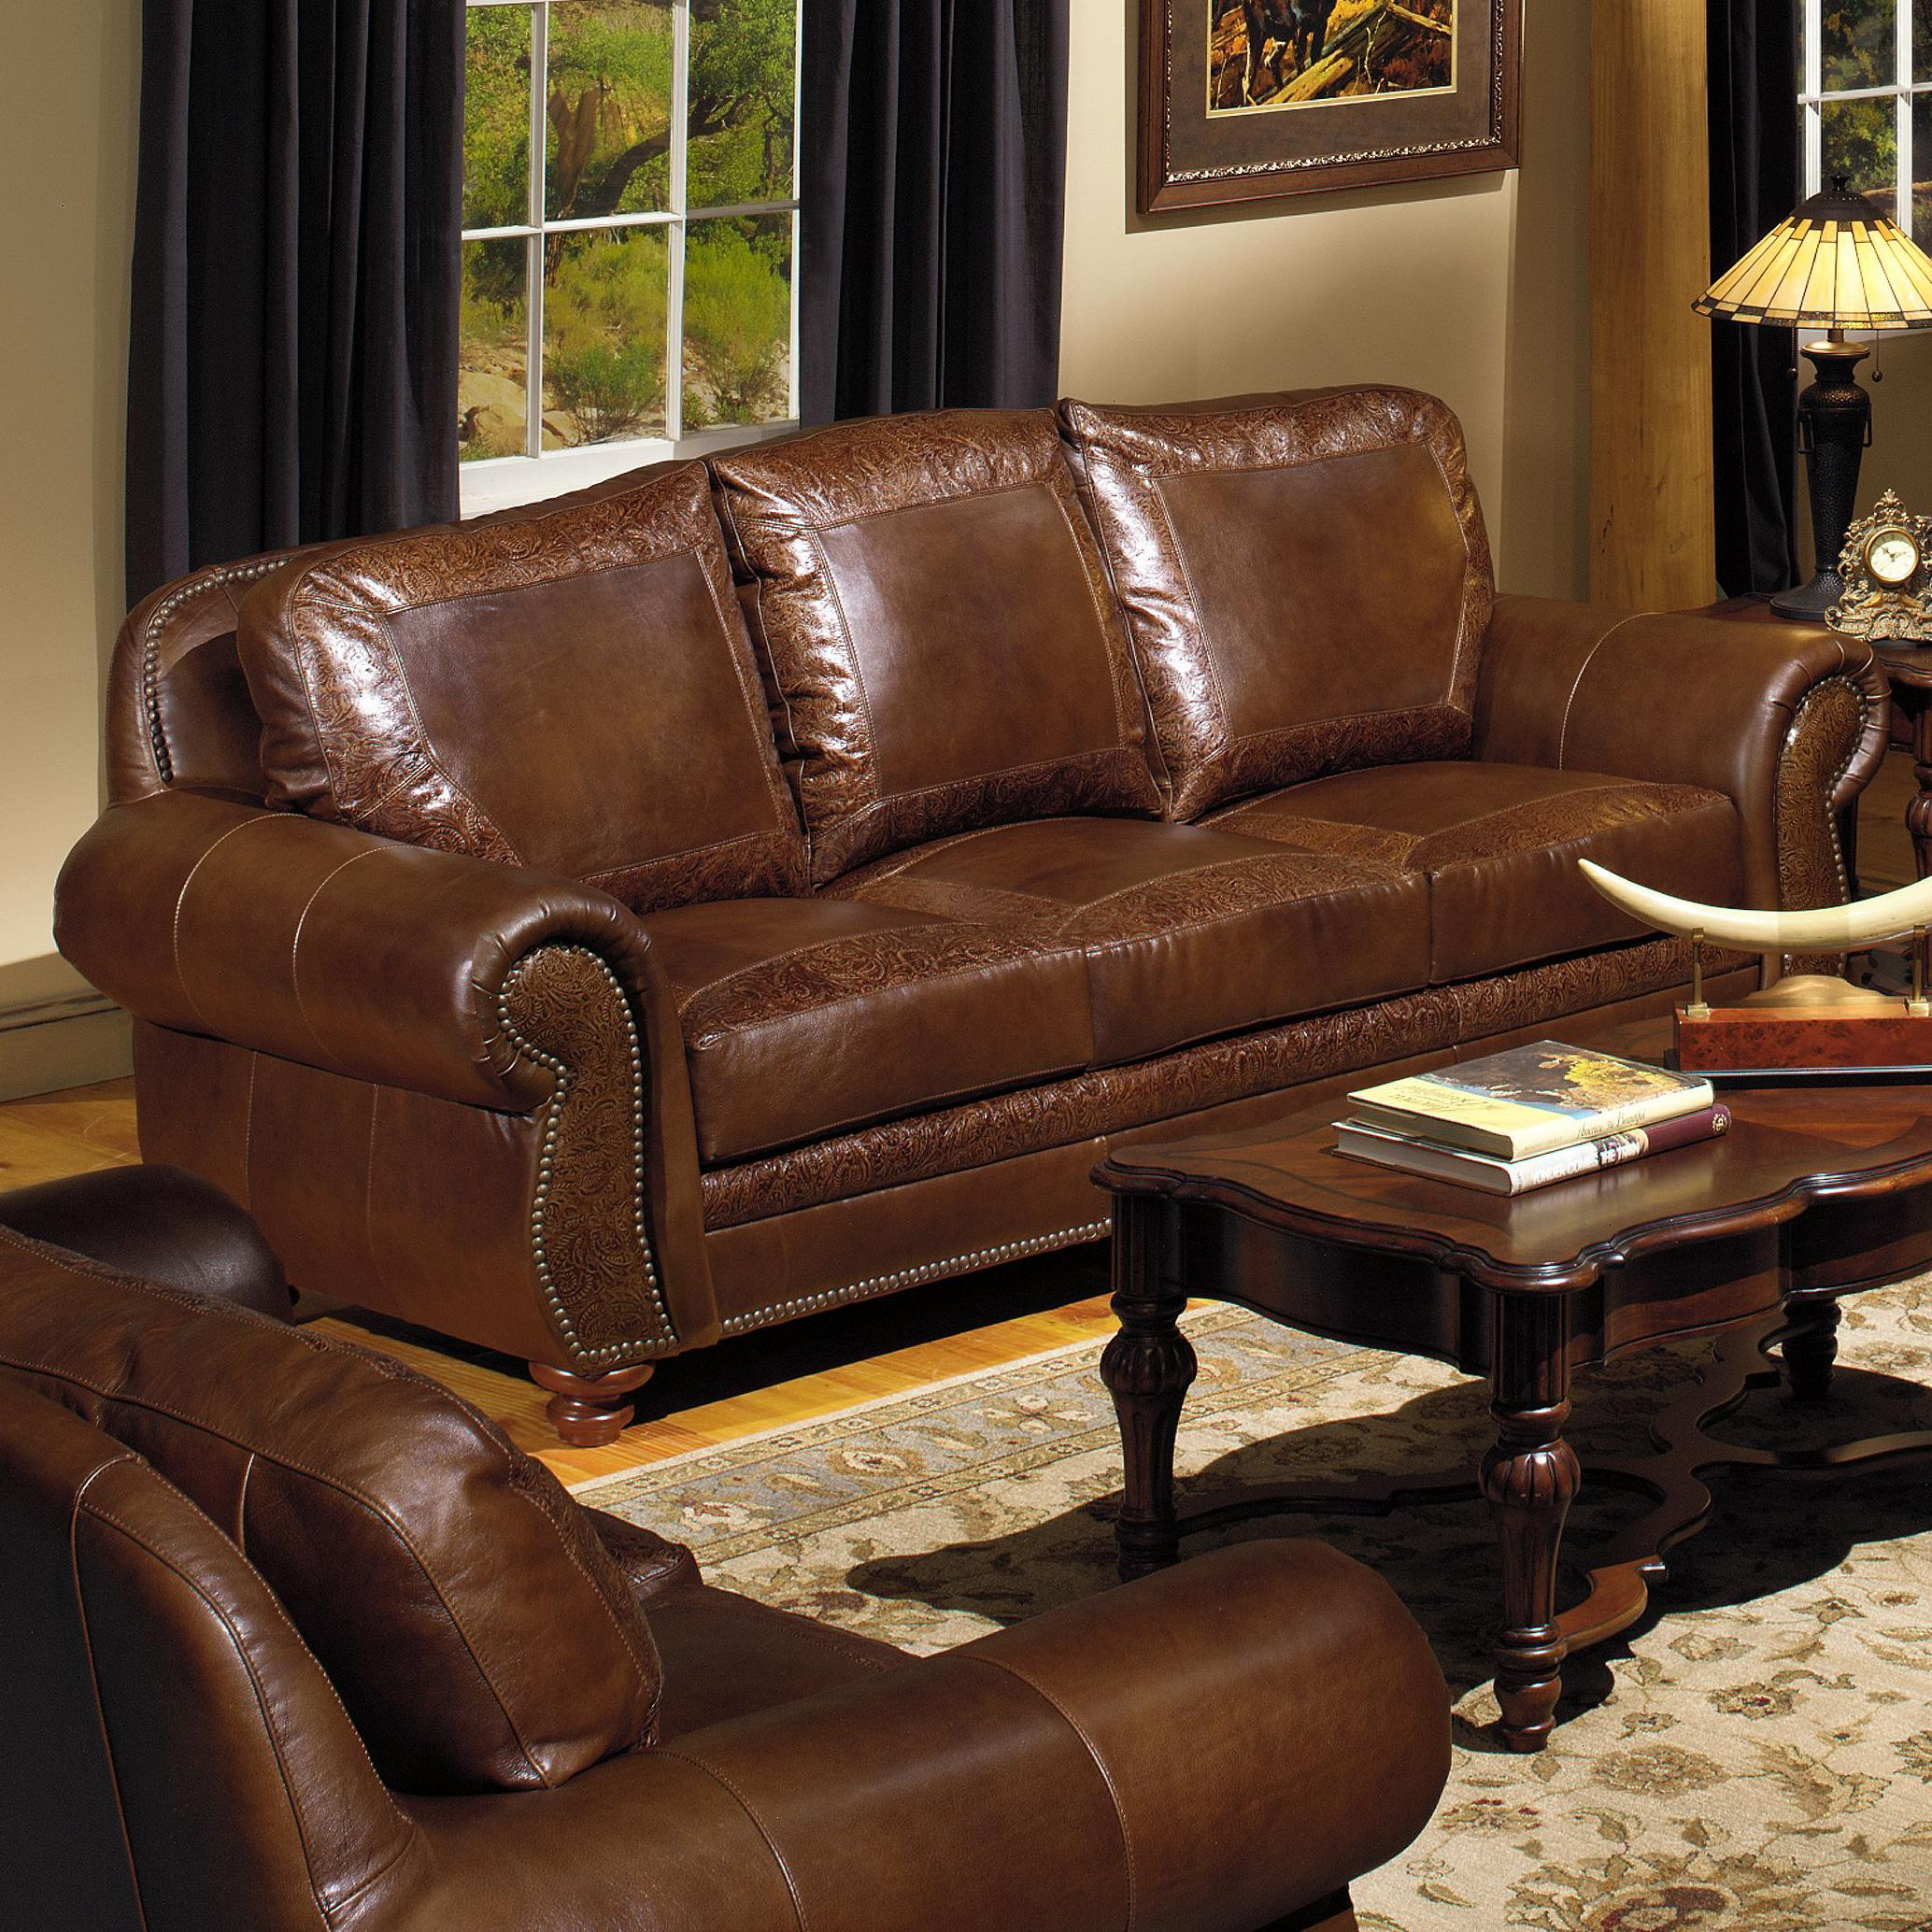 Leather Couch: Traditional Leather Sofa With Nailhead Trim By USA Premium